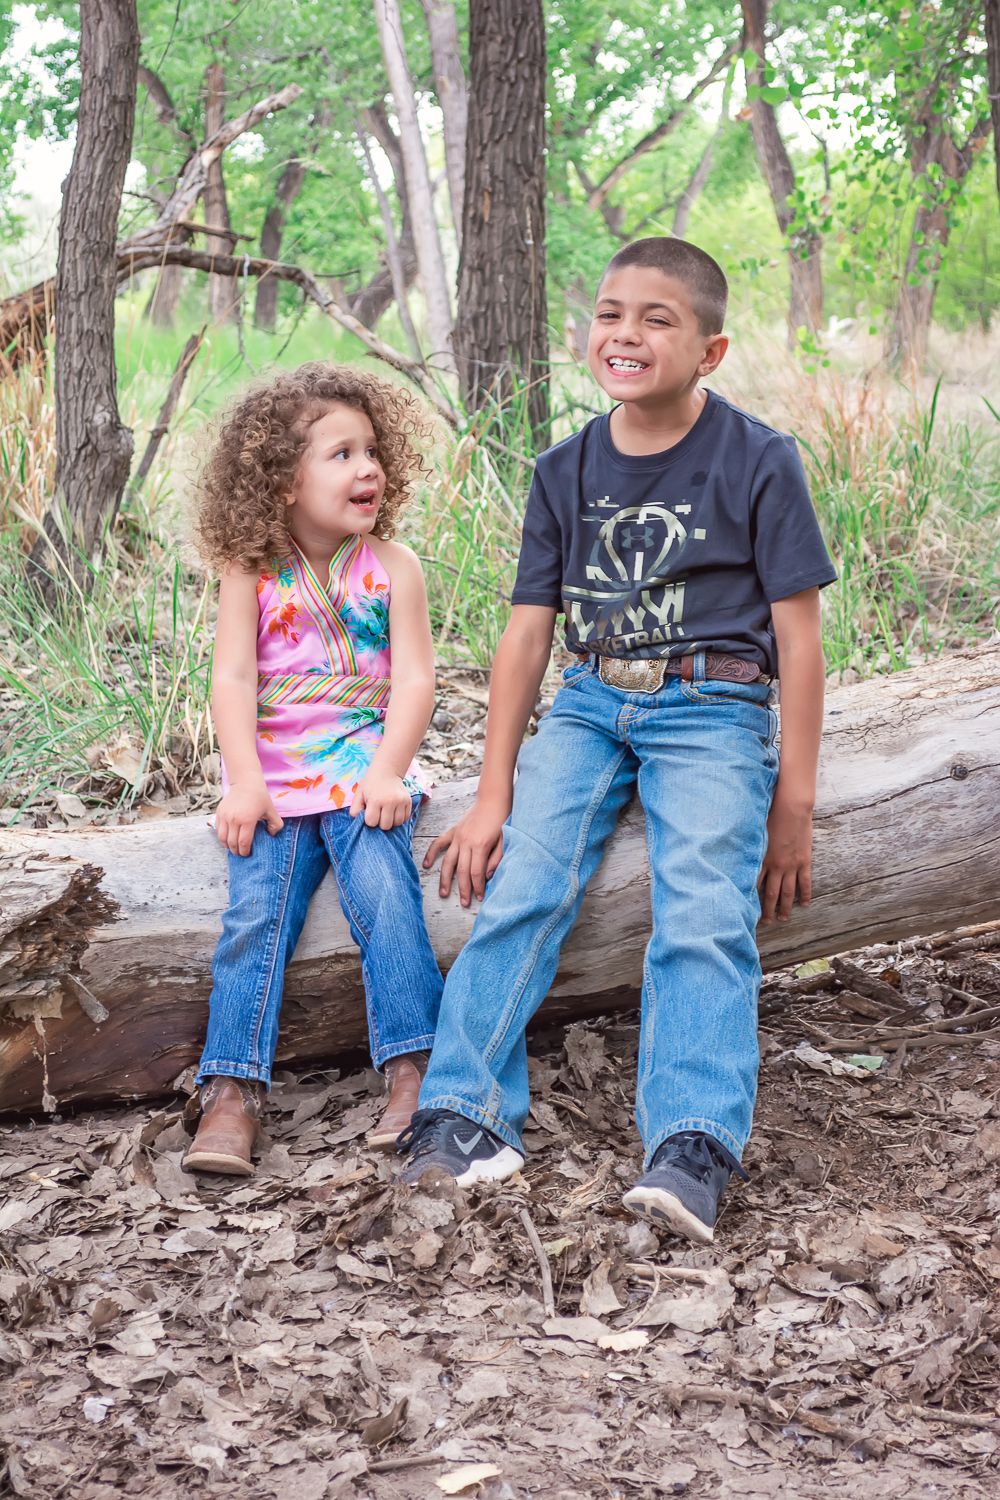 Brother and Sister Portrait, Childhood Photo, Outdoor Portrait Session, Sibling Portrait, Kid Photo, Group Photo, Albuquerque Photographer